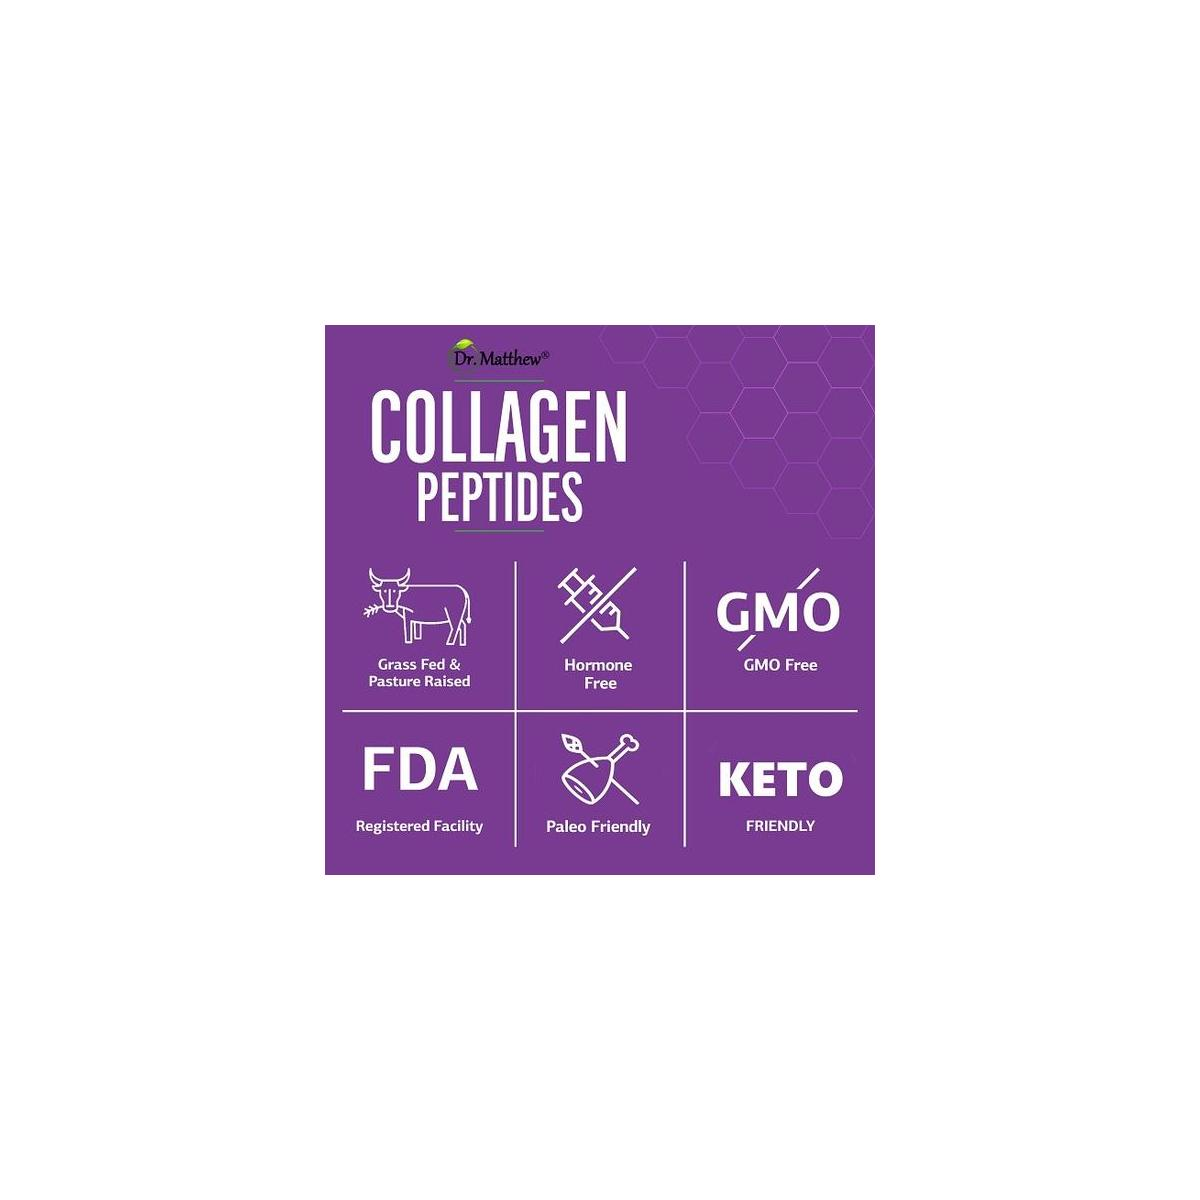 Best Collagen Powder for Women & Men. Collagen peptides Protein Powder. Pure Keto Hydrolyzed Collagen Supplements for Hair Growth, Skin, Nails, Joints & Weight Loss. Grass Fed, Unflavored. Type 1 & 3